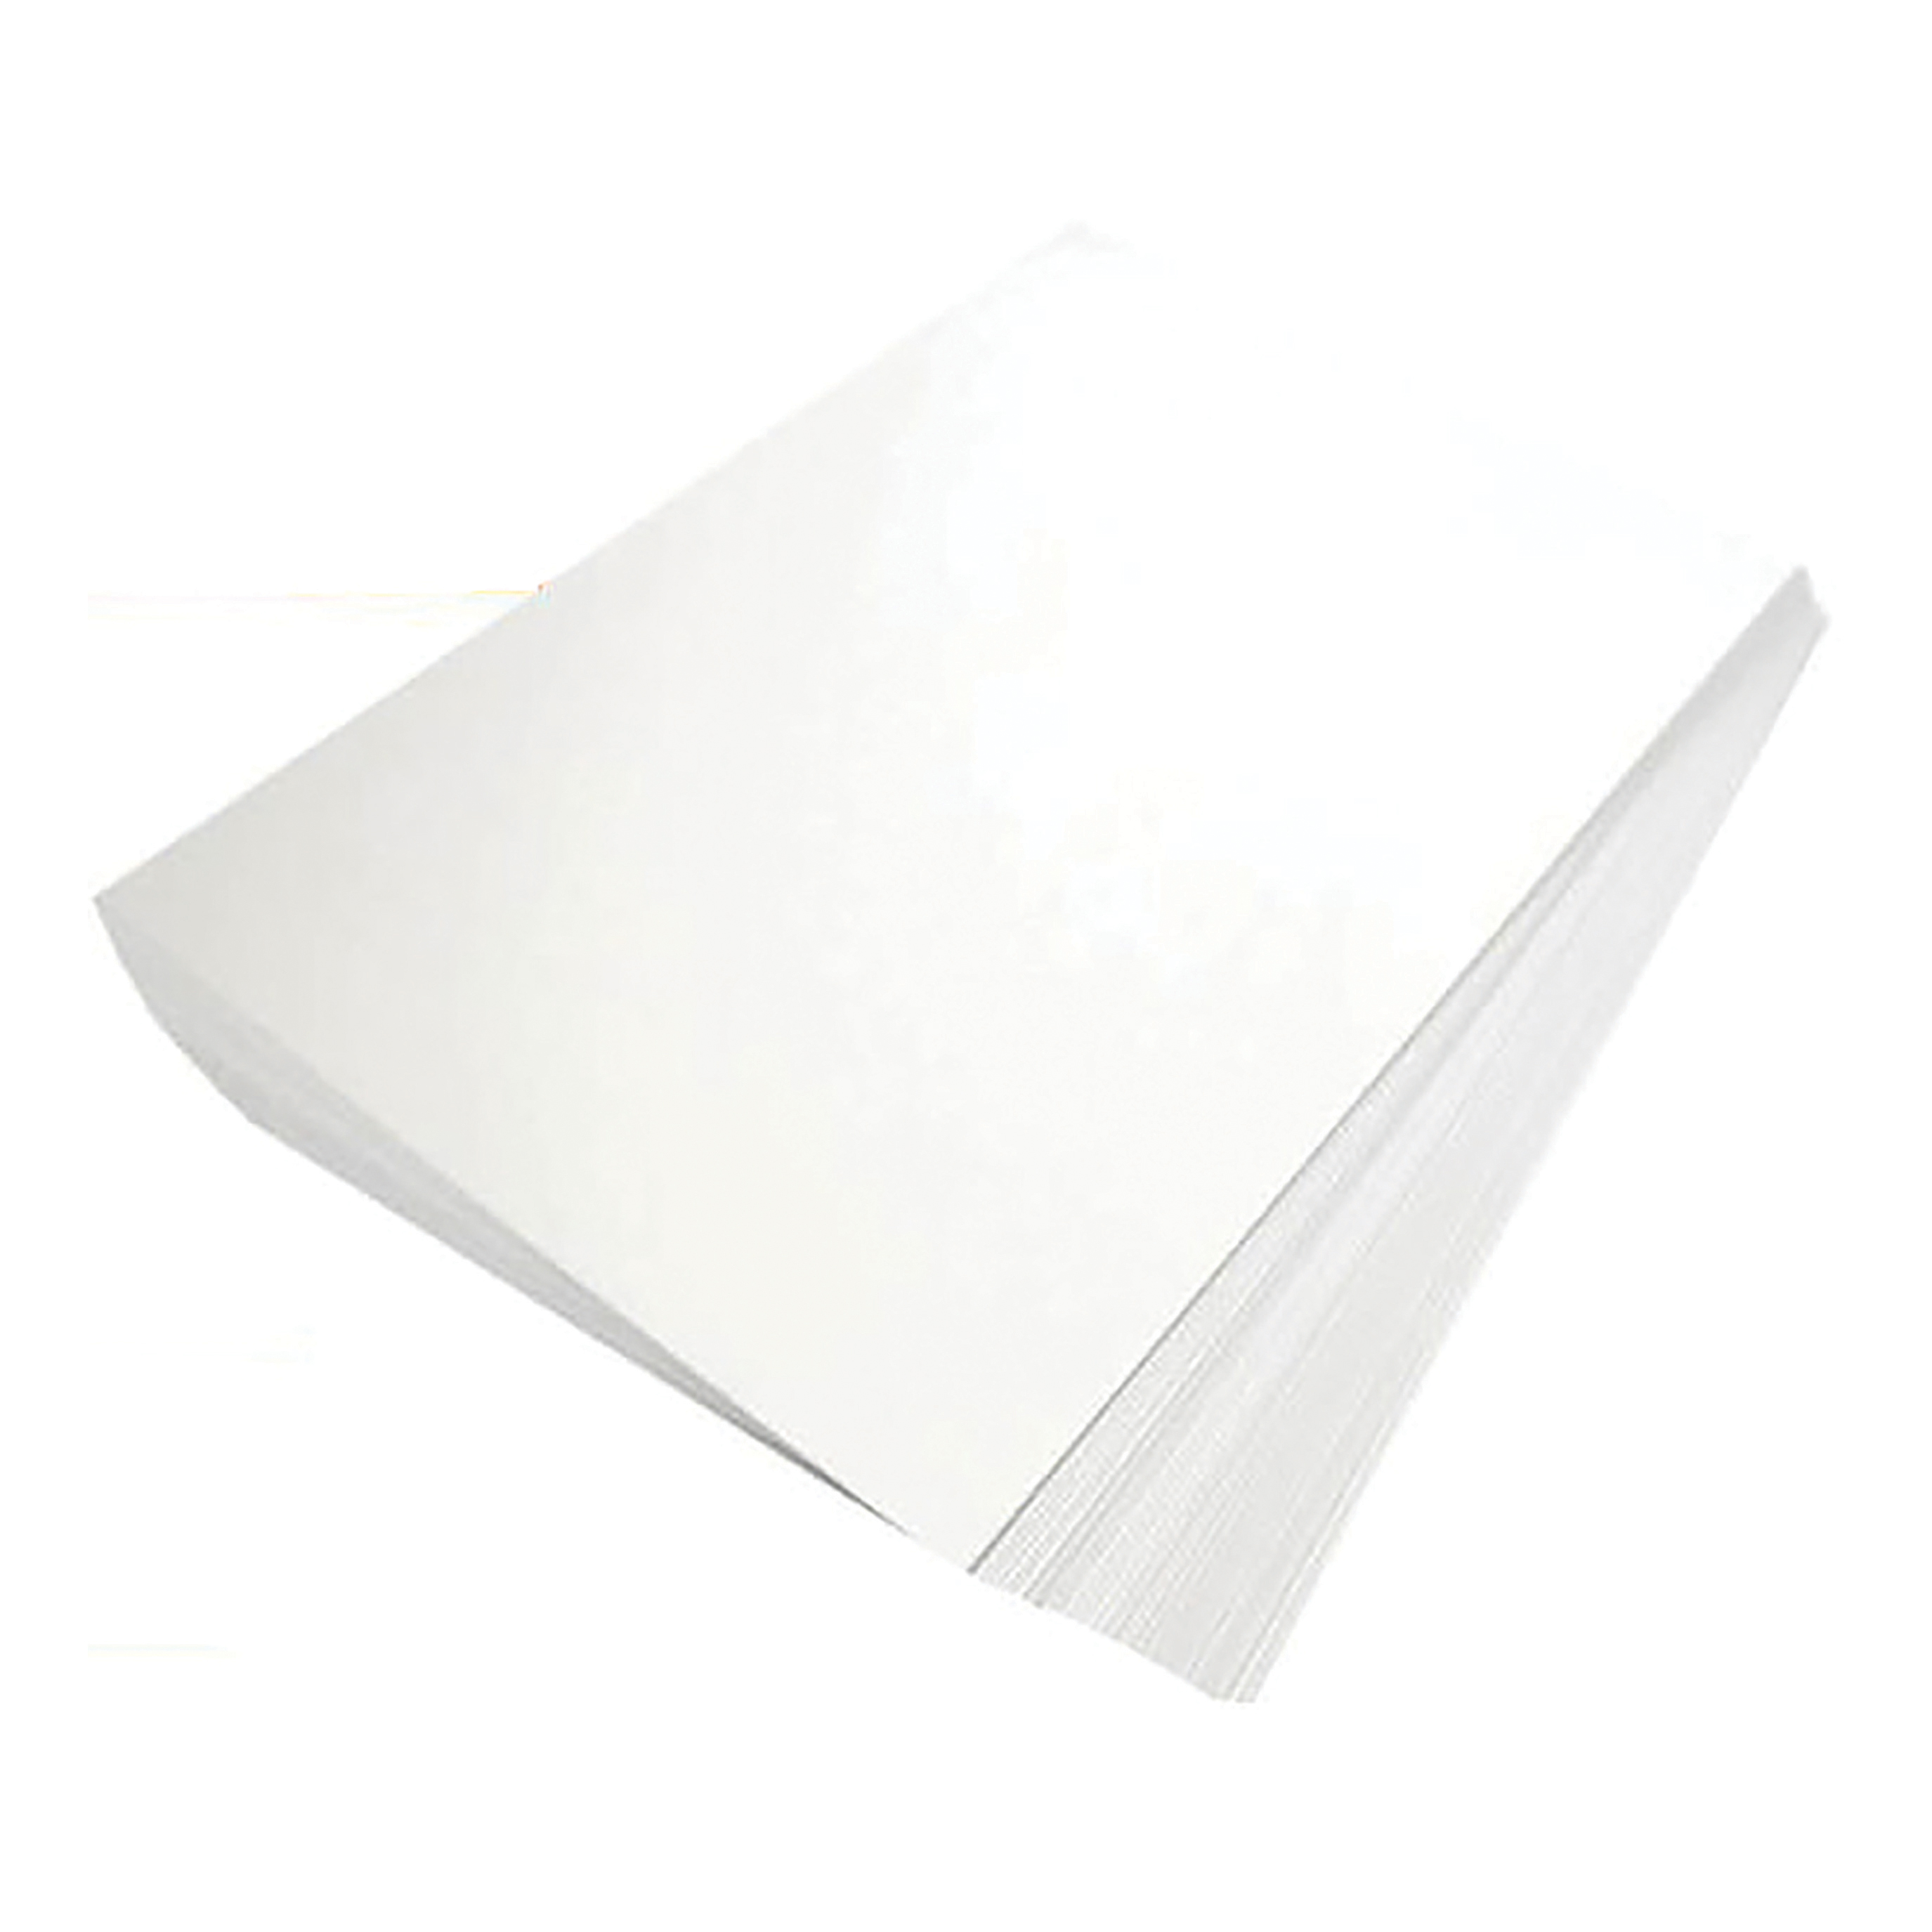 5 Star Elite Premium Business Paper Laid Finish Ream-Wrapped 100gsm A4 High White 500 Sheets